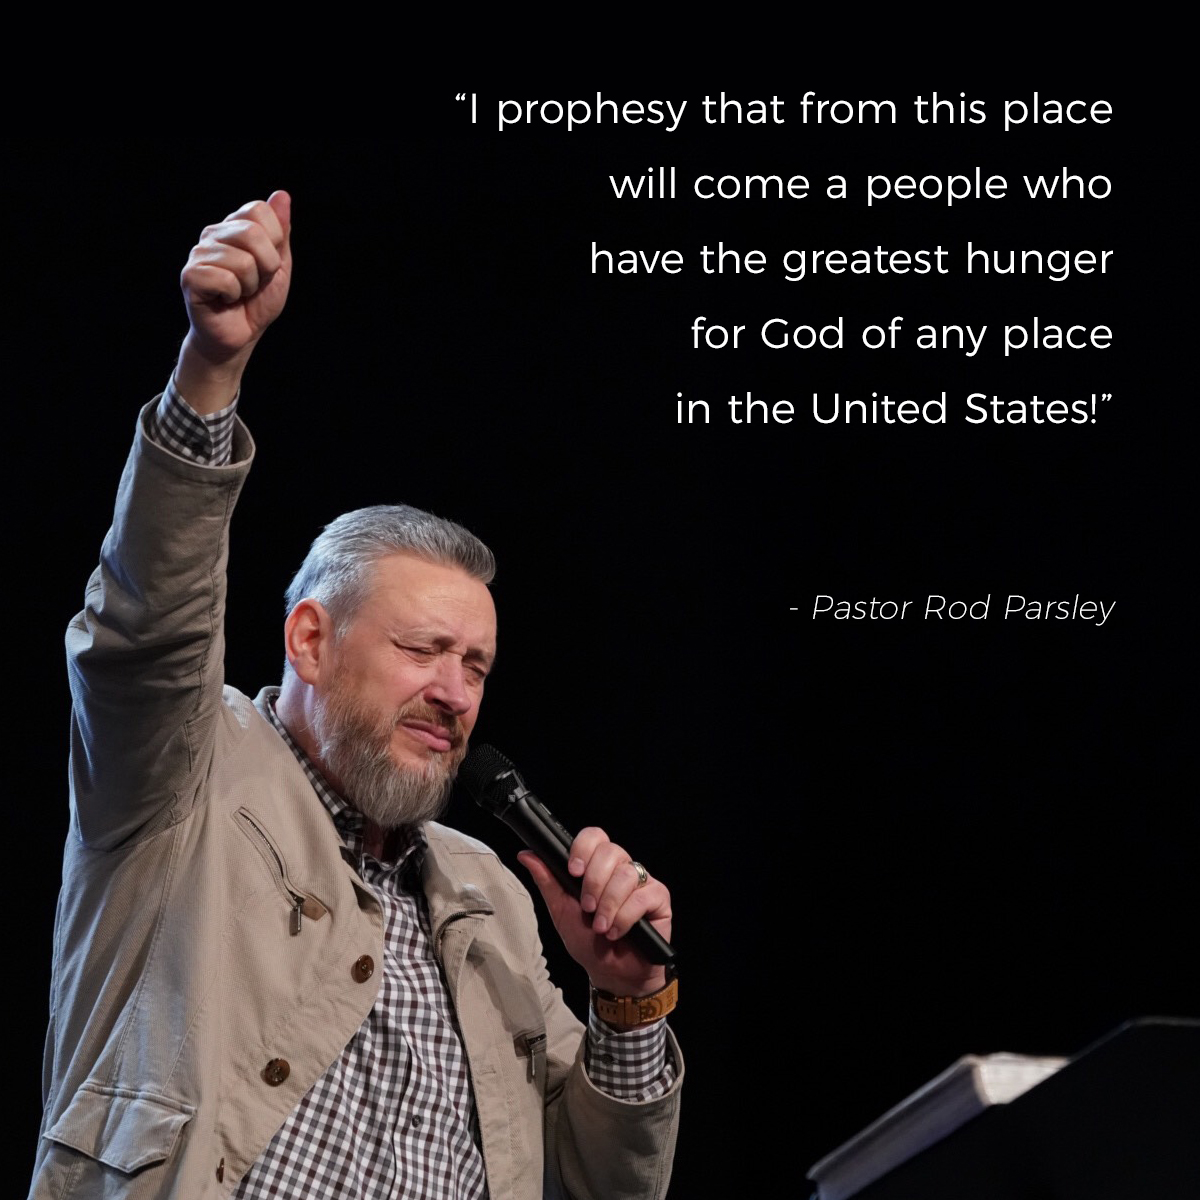 """I prophesy that from this place will come a people who have the greatest hunger for God of any place in the United States!"" – Pastor Rod Parsley"